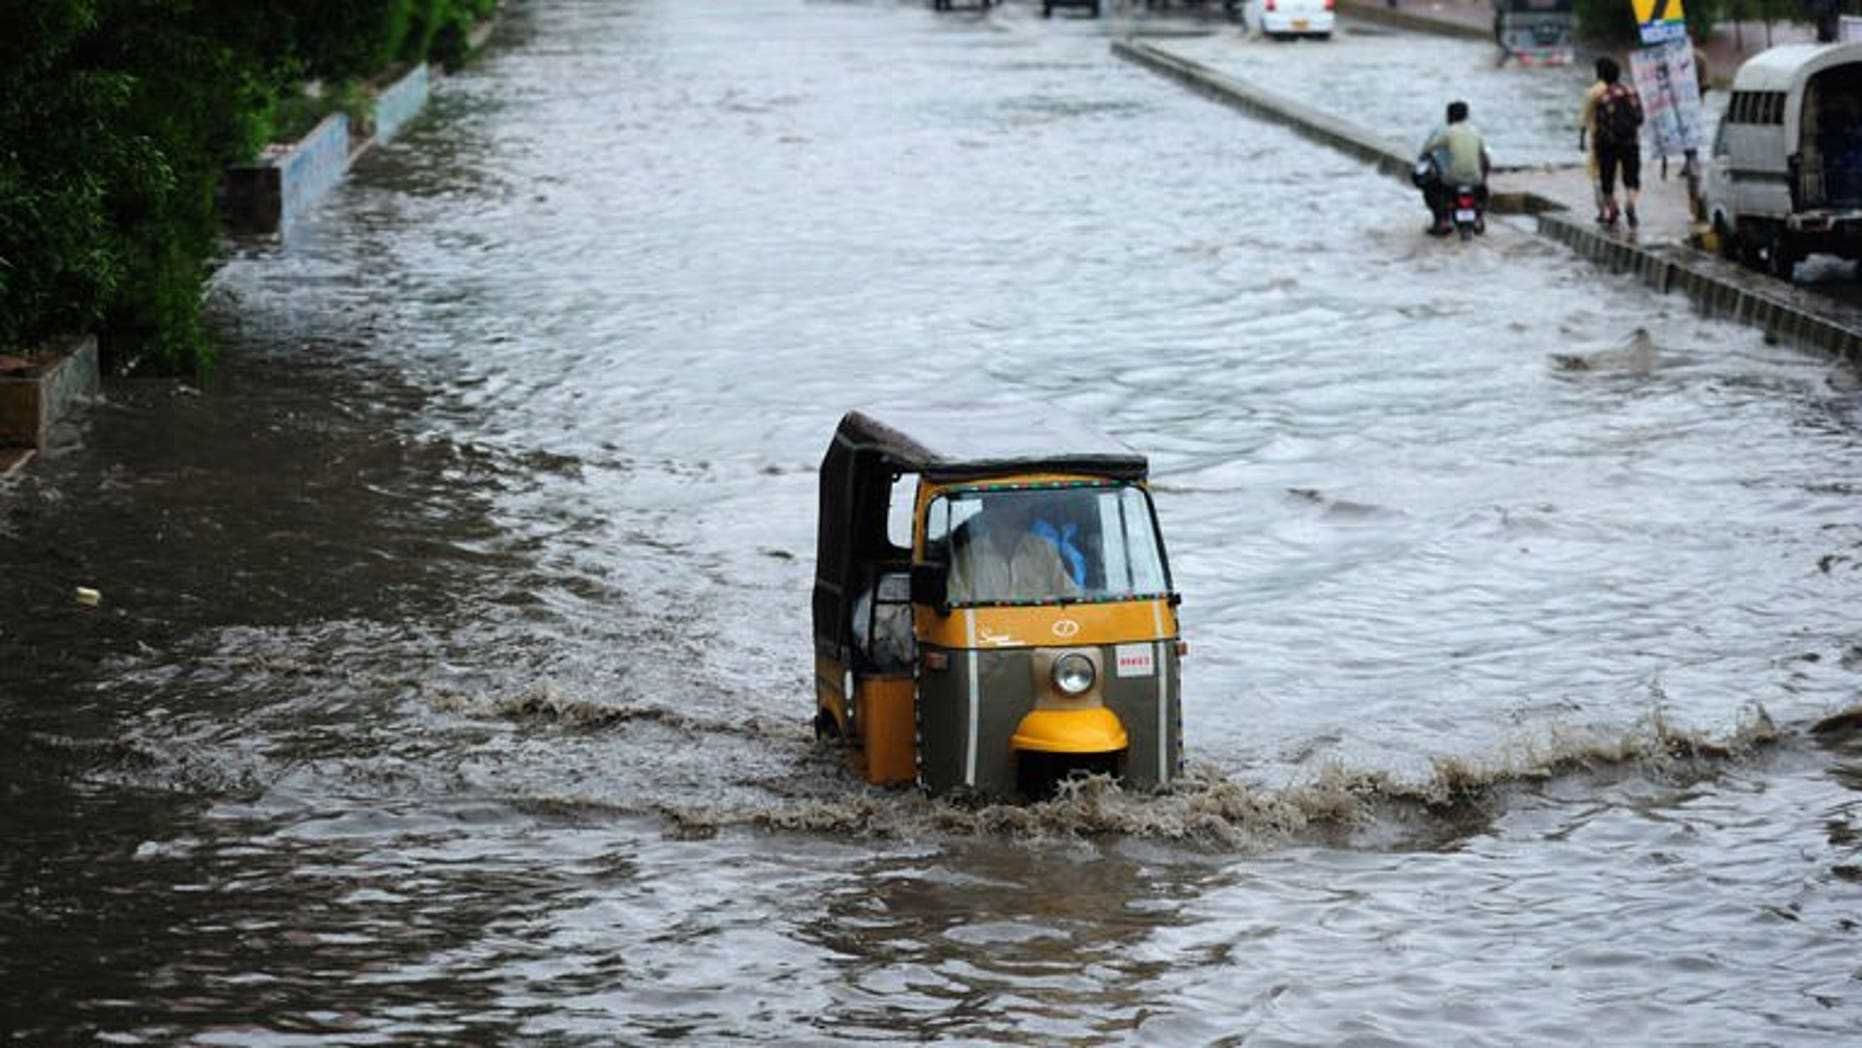 A Pakistani man drives his auto rickshaw along a flooded street after the rains in Karachi on August 3, 2013. At least 17 people were killed across Pakistan on Saturday after heavy monsoon rains caused flooding and roofs to collapse, officials said.